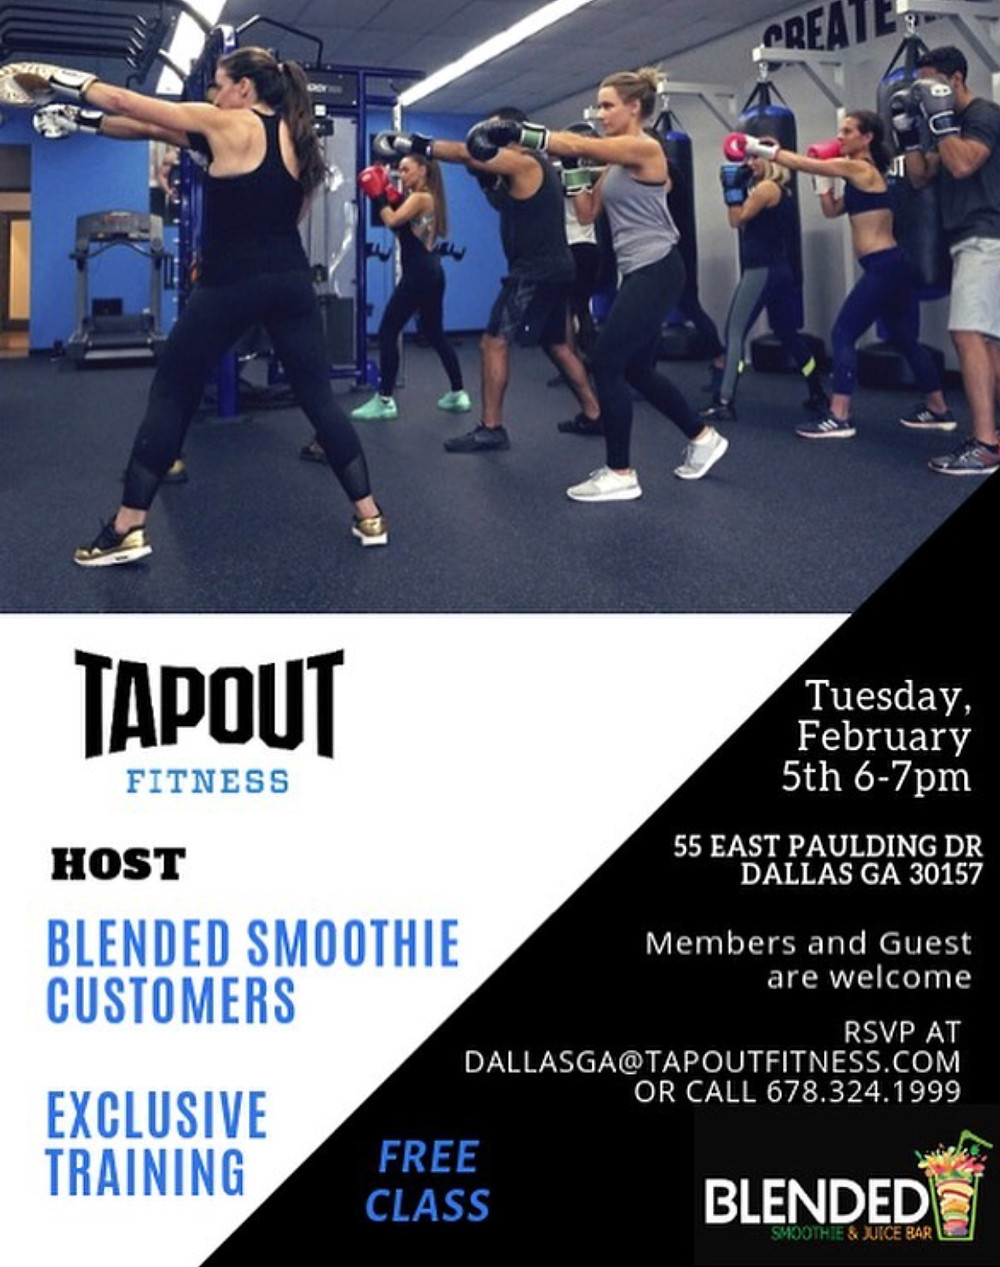 Free Fitness Class For All Blended Smoothie Juice Bar Customers